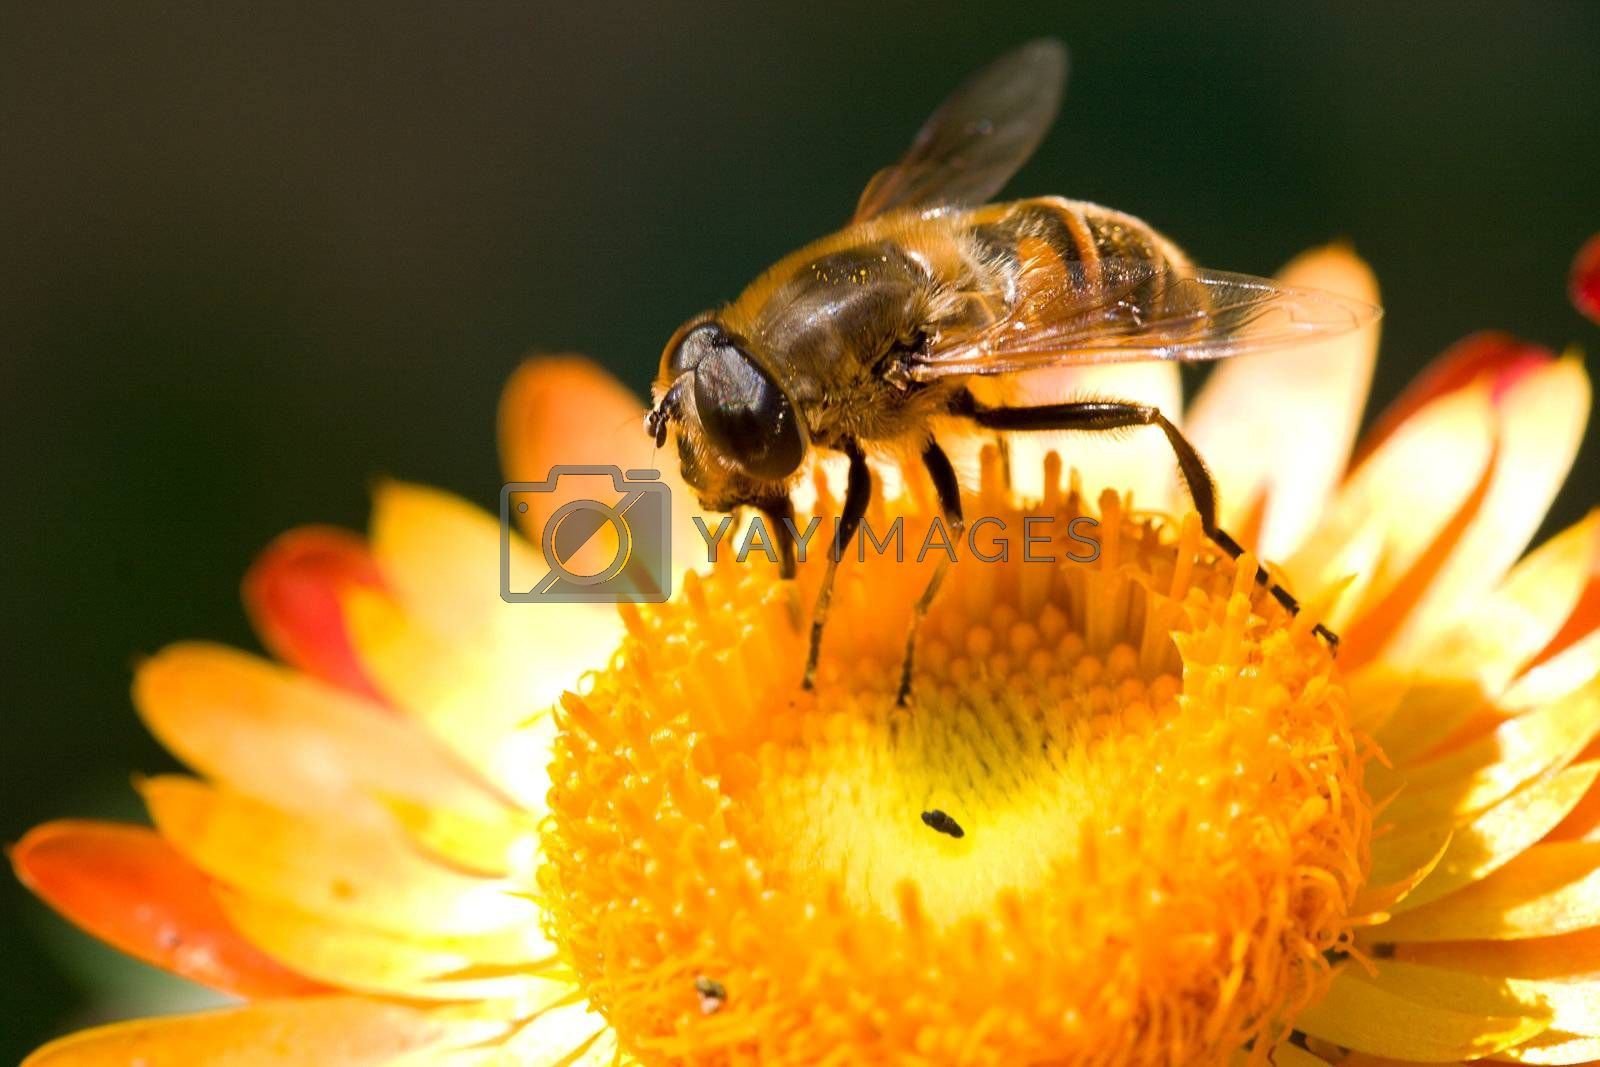 Royalty free image of bee on flower collects nectar by Alekcey